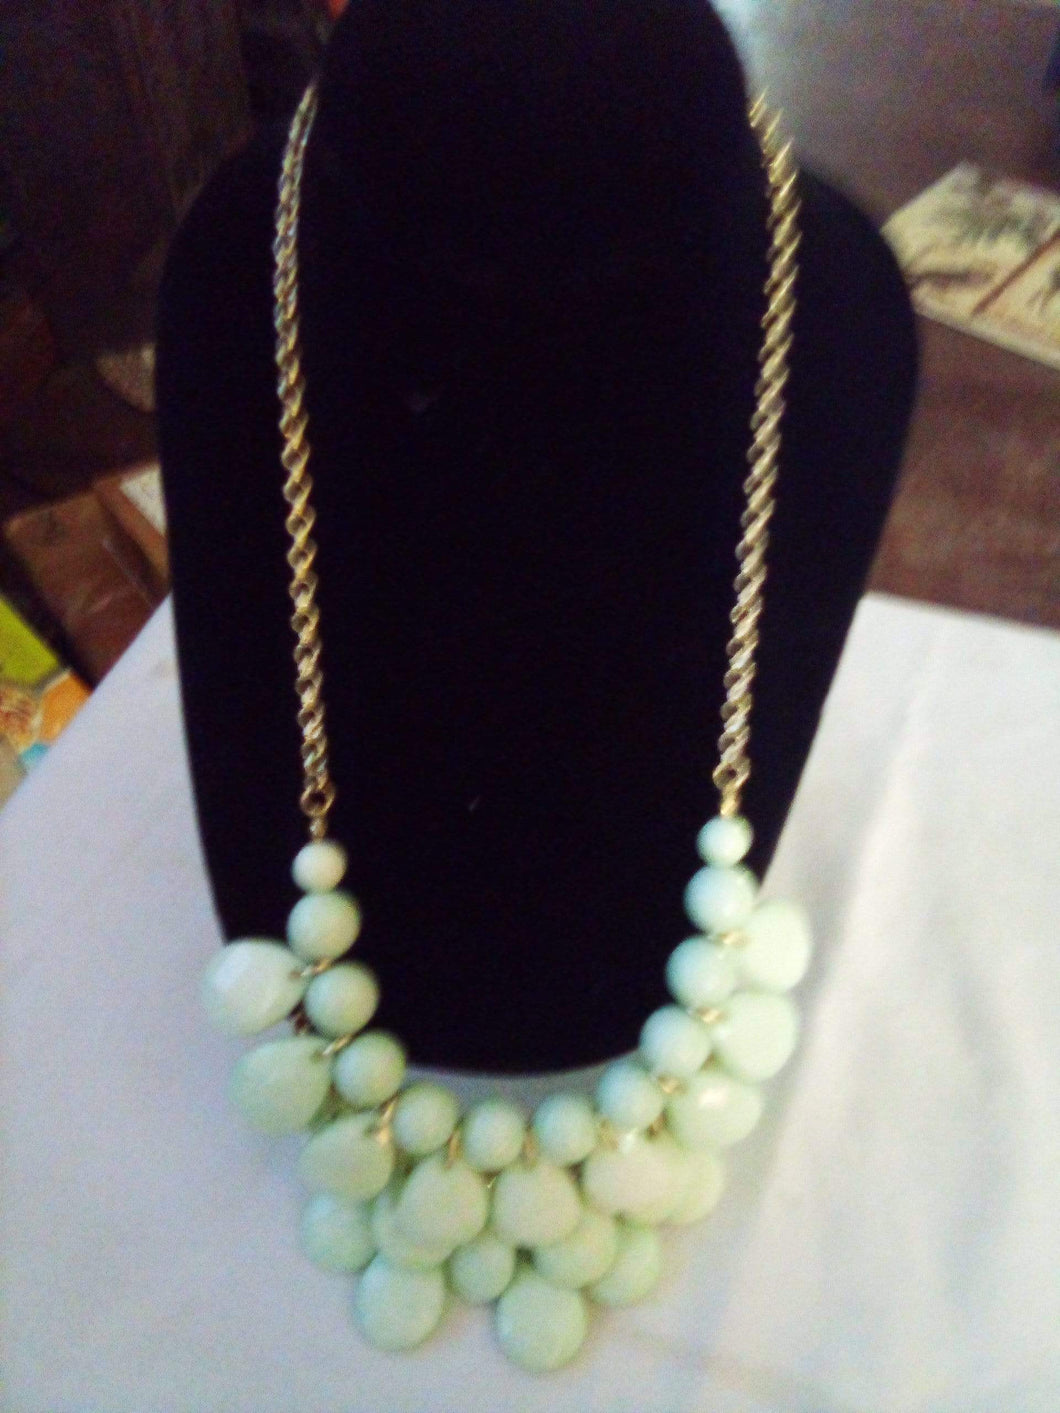 An elegant light green dressy necklace - B&P'sringsnthings